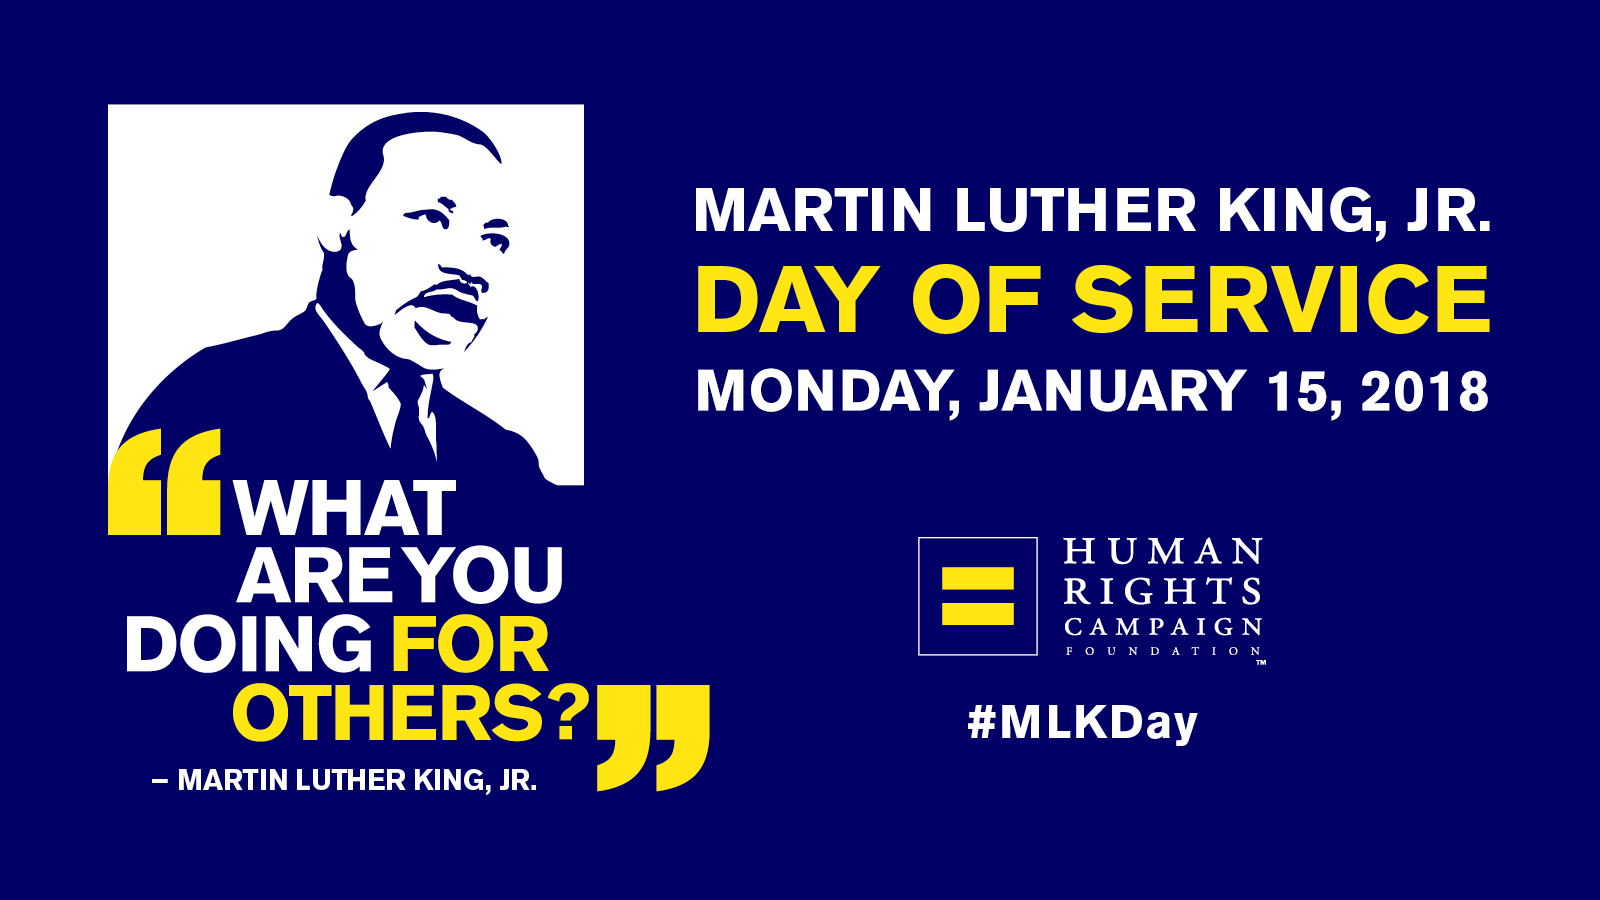 Martin Luther King, Jr. Day of Service | Human Rights Campaign